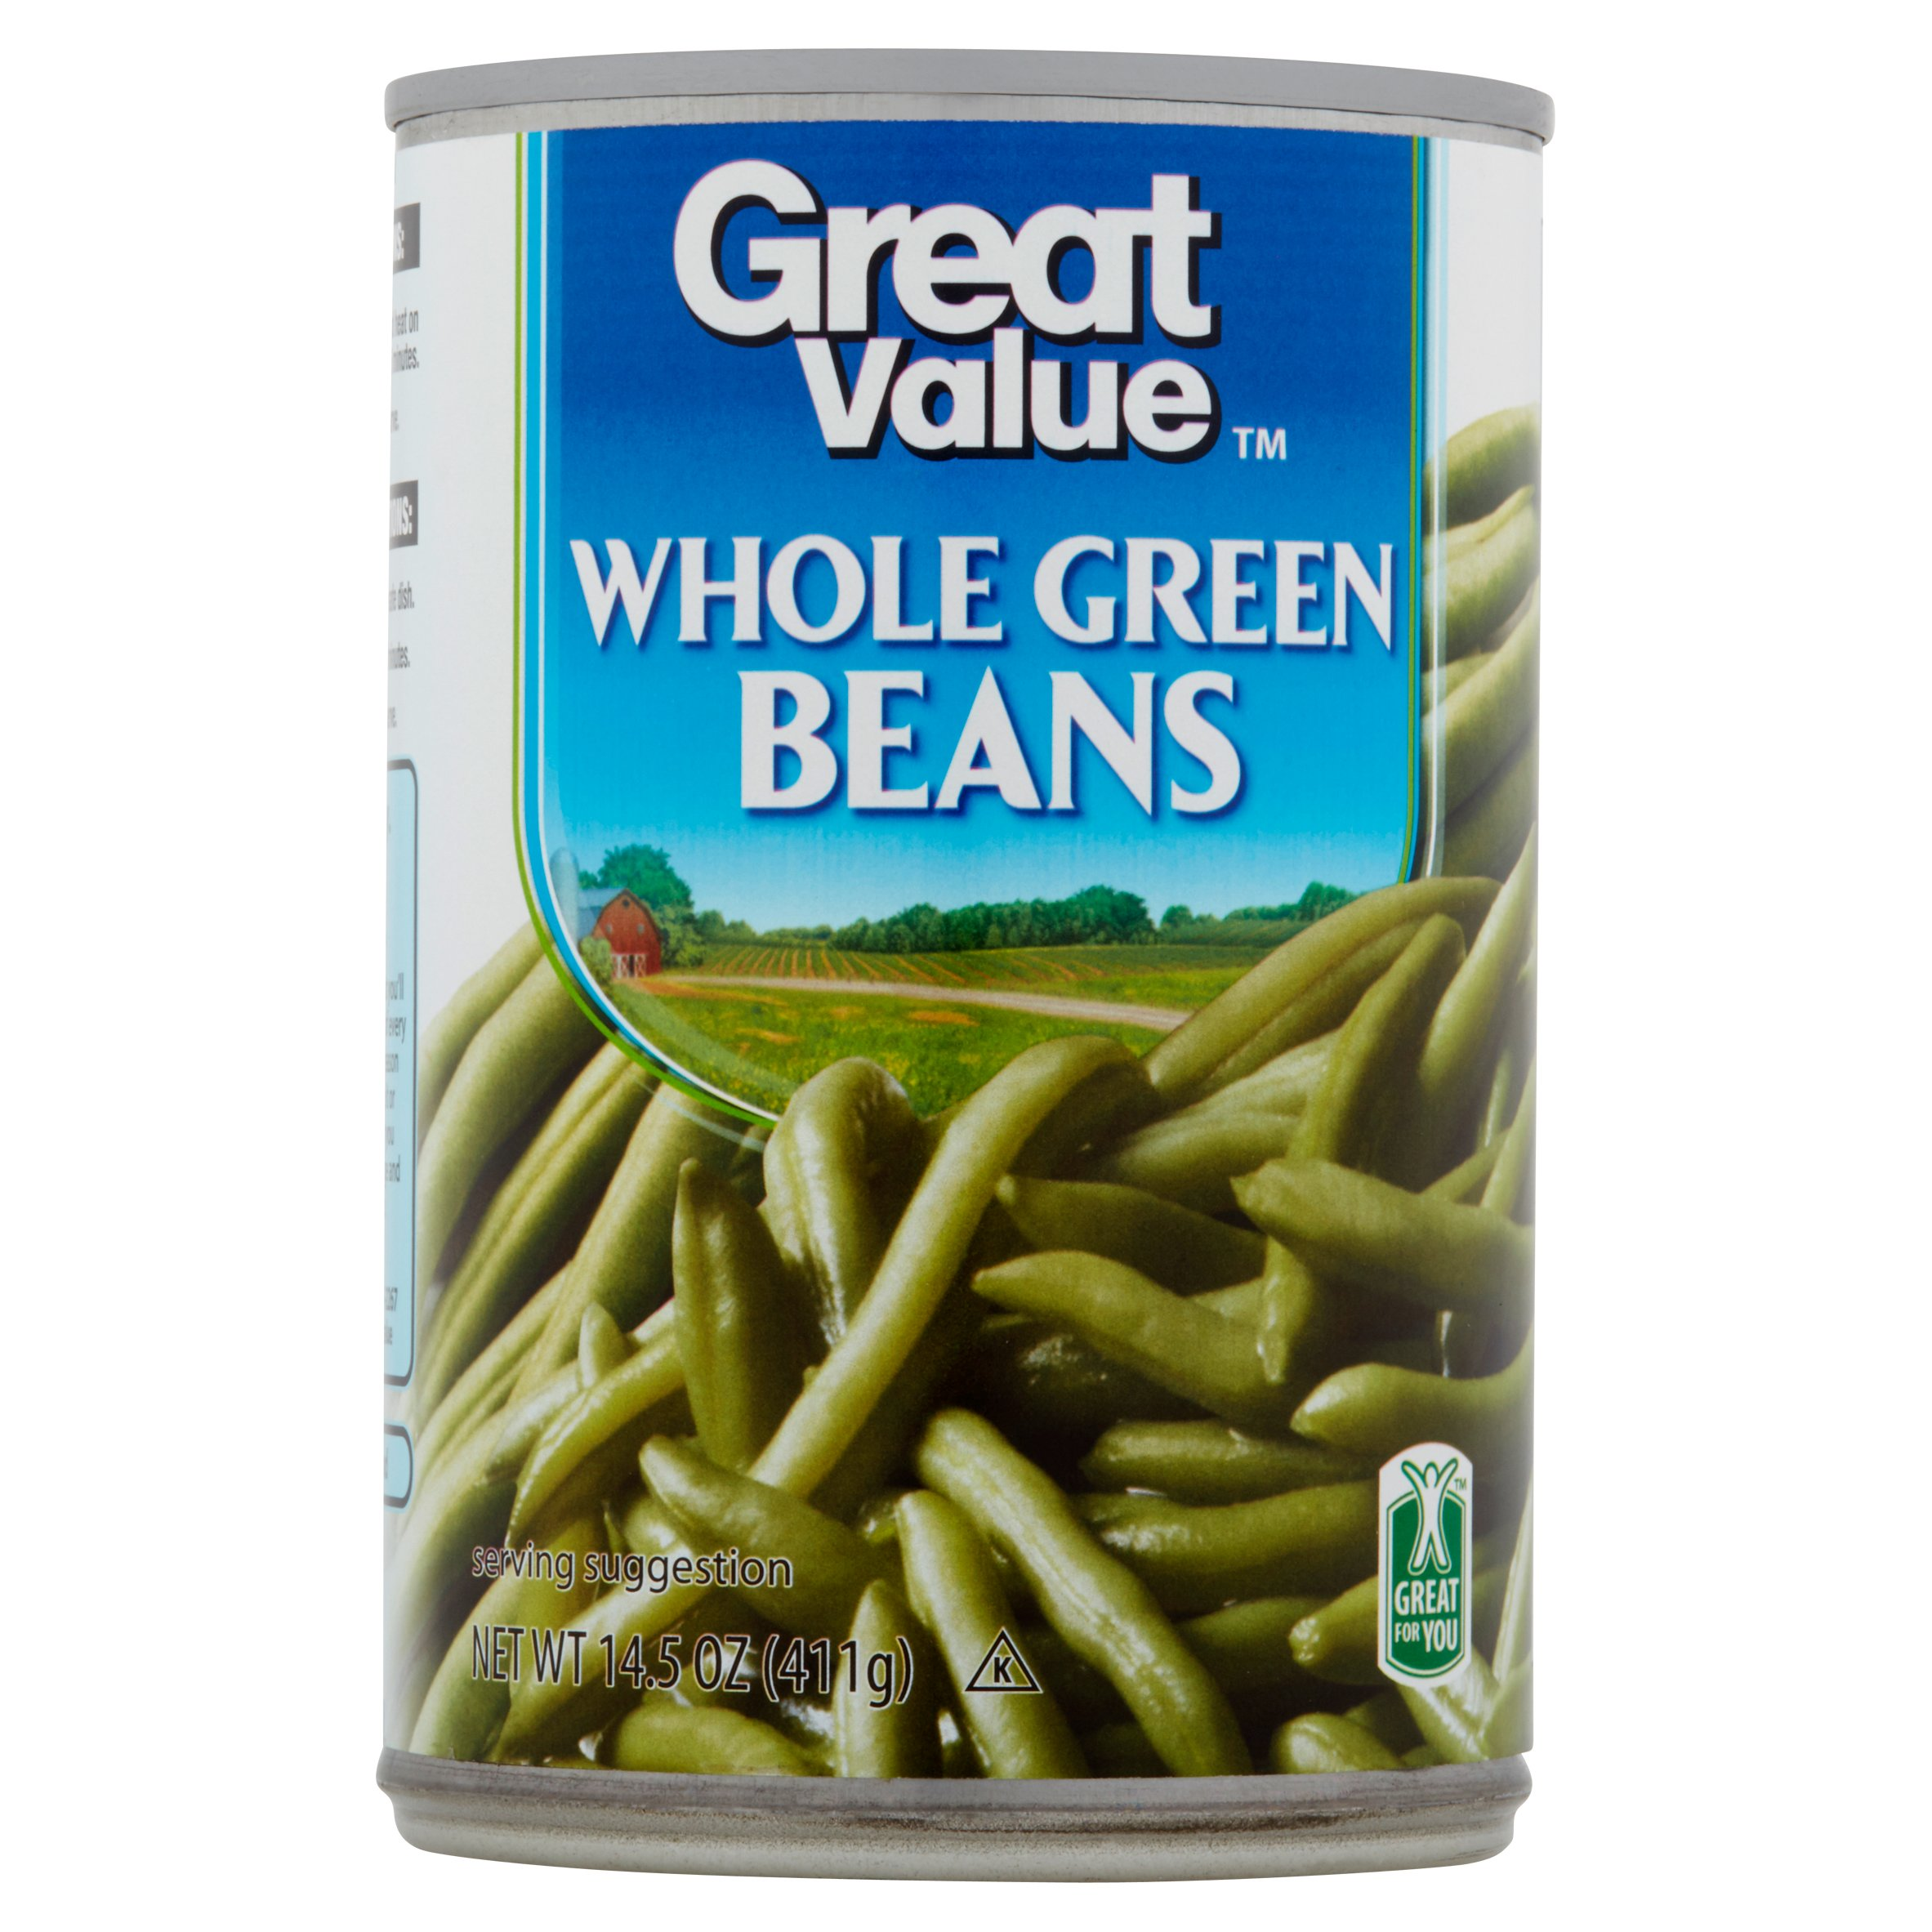 Great Value Whole Green Beans, 14.5 Oz